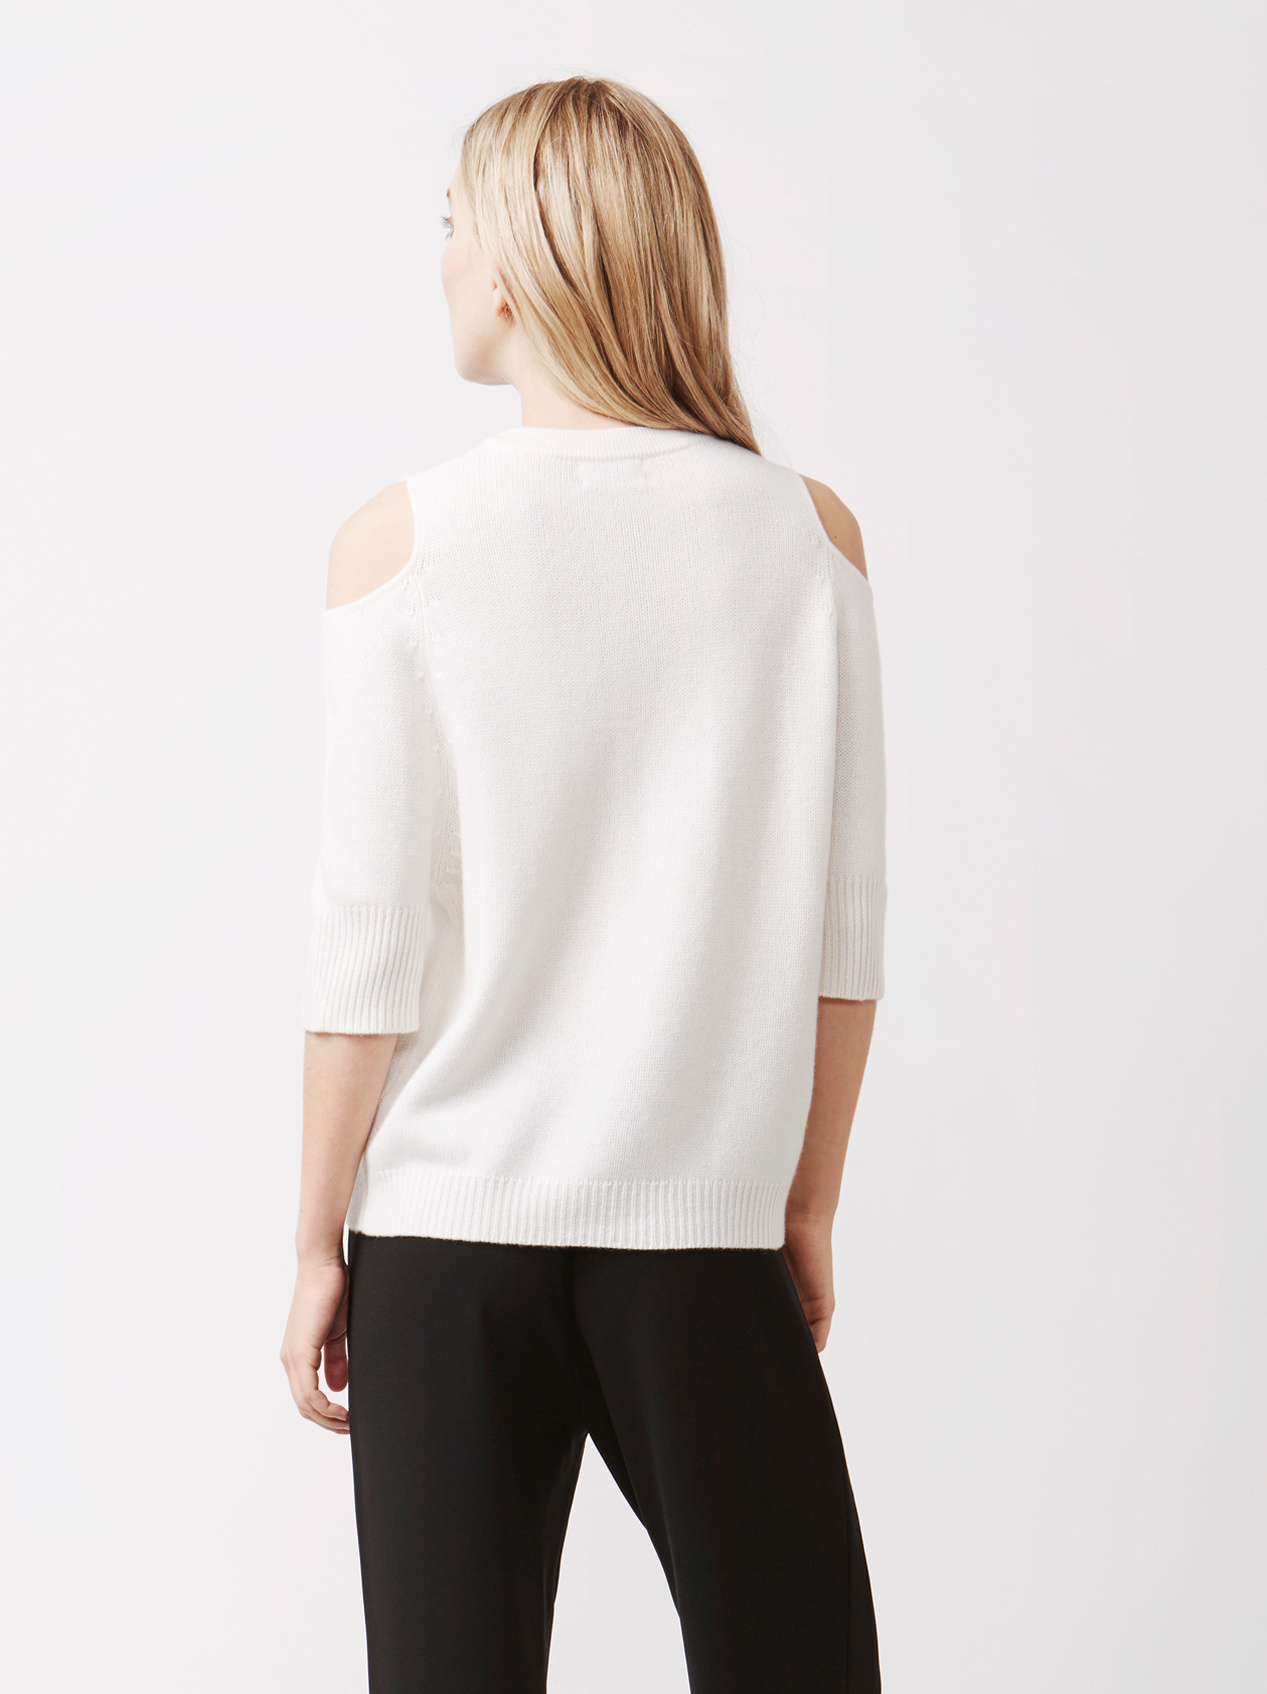 Soft Goat Women's Cold Shoulder Sweater Off White